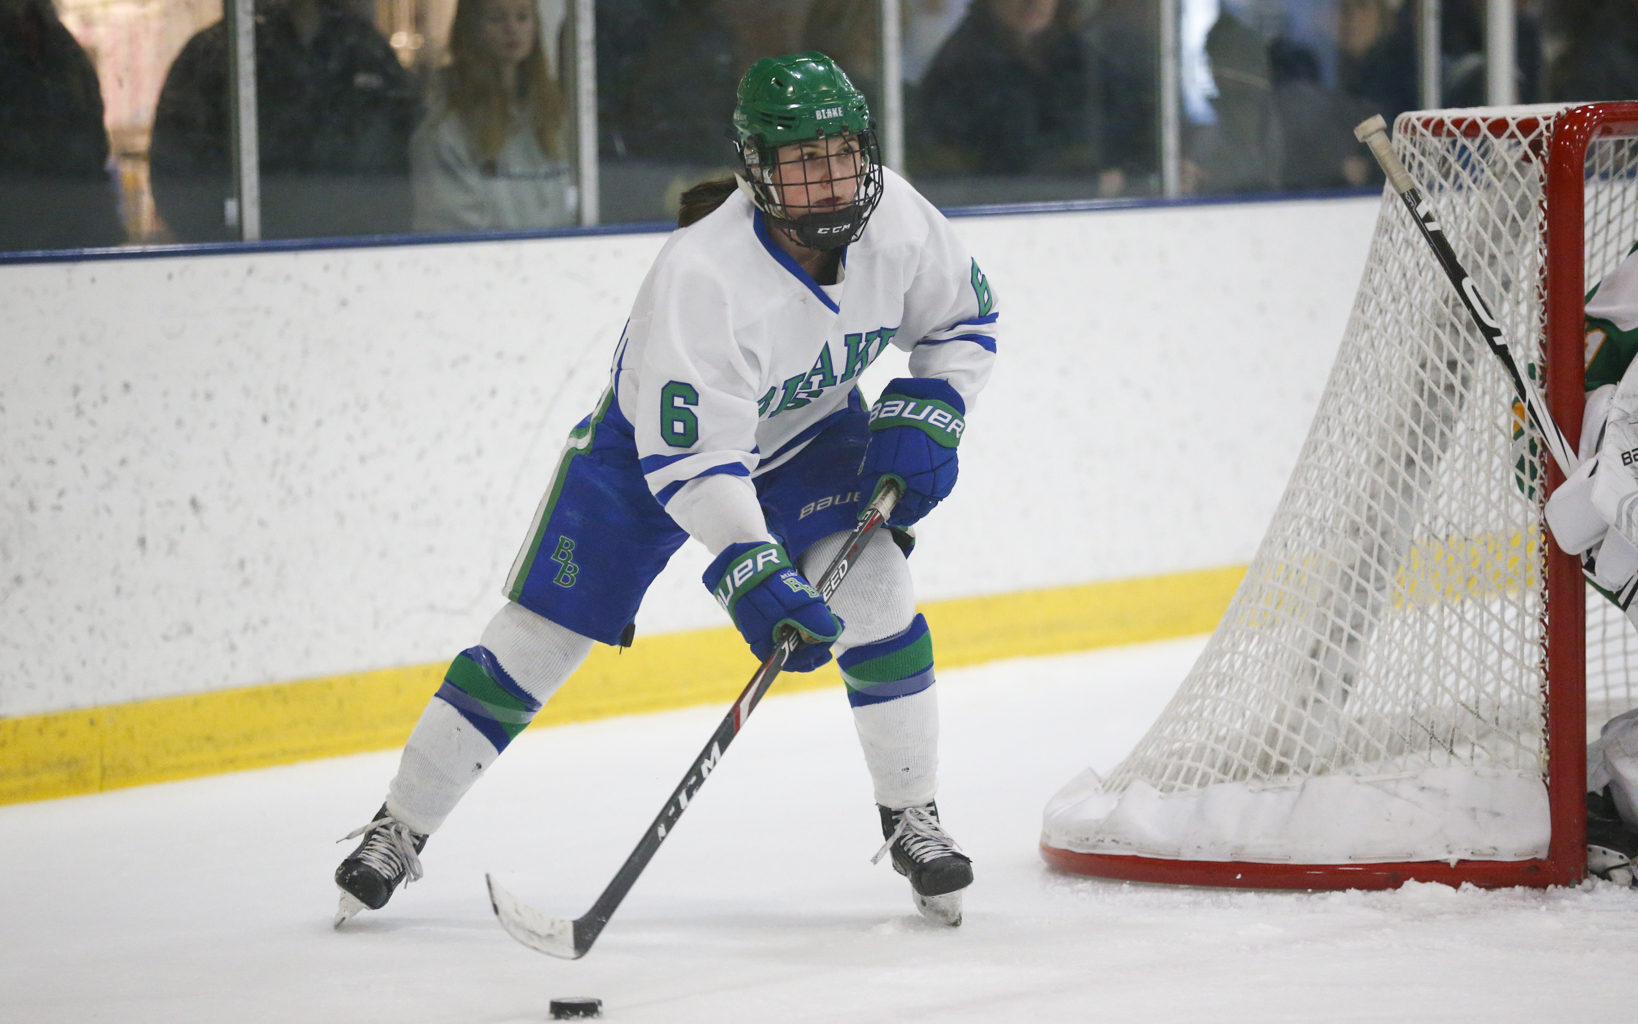 Blake's Audrey Wethington (6) skates from behind her own net against Edina Saturday afternoon. Wethington scored the Bears' goal in their 4-1 loss to the Hornets. Photo by Jeff Lawler, SportsEngine